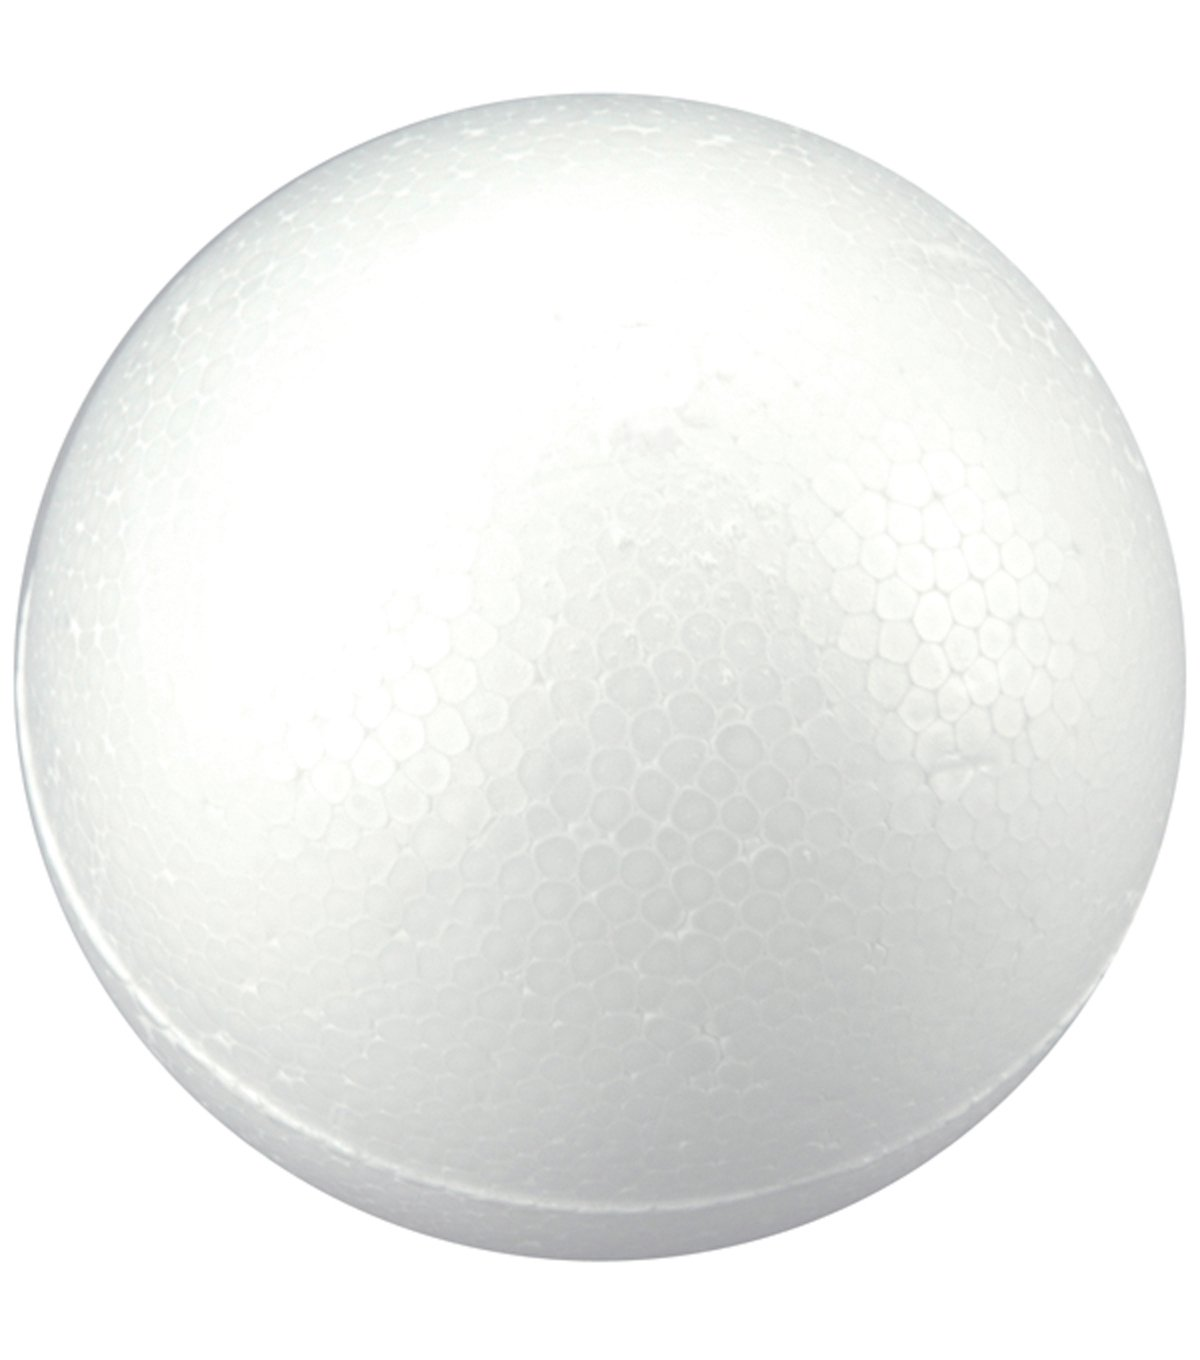 5 inch Smooth Foam Balls for Arts & Crafts Floral Wedding Decor Science Modeling and School Projects (5'' inch - 12 Balls)